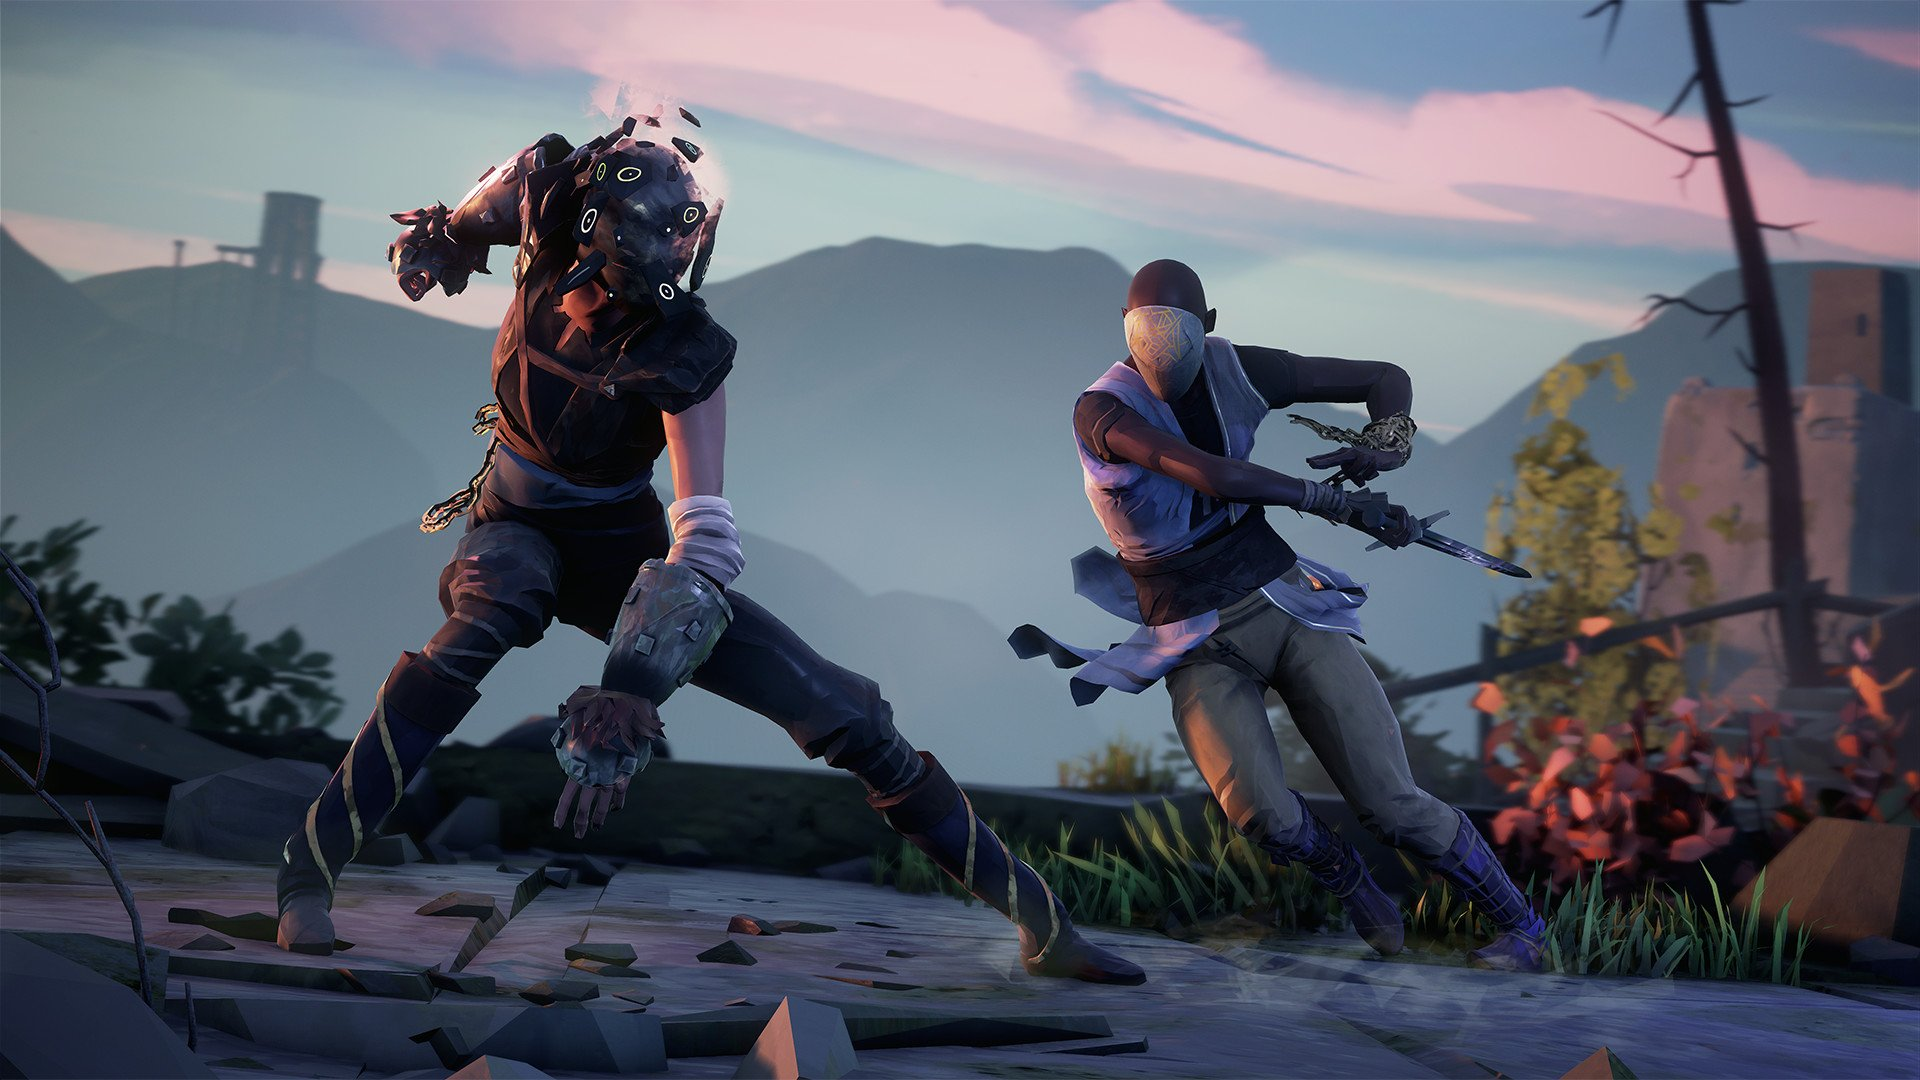 Absolver will be added to Xbox Game Pass on January 7